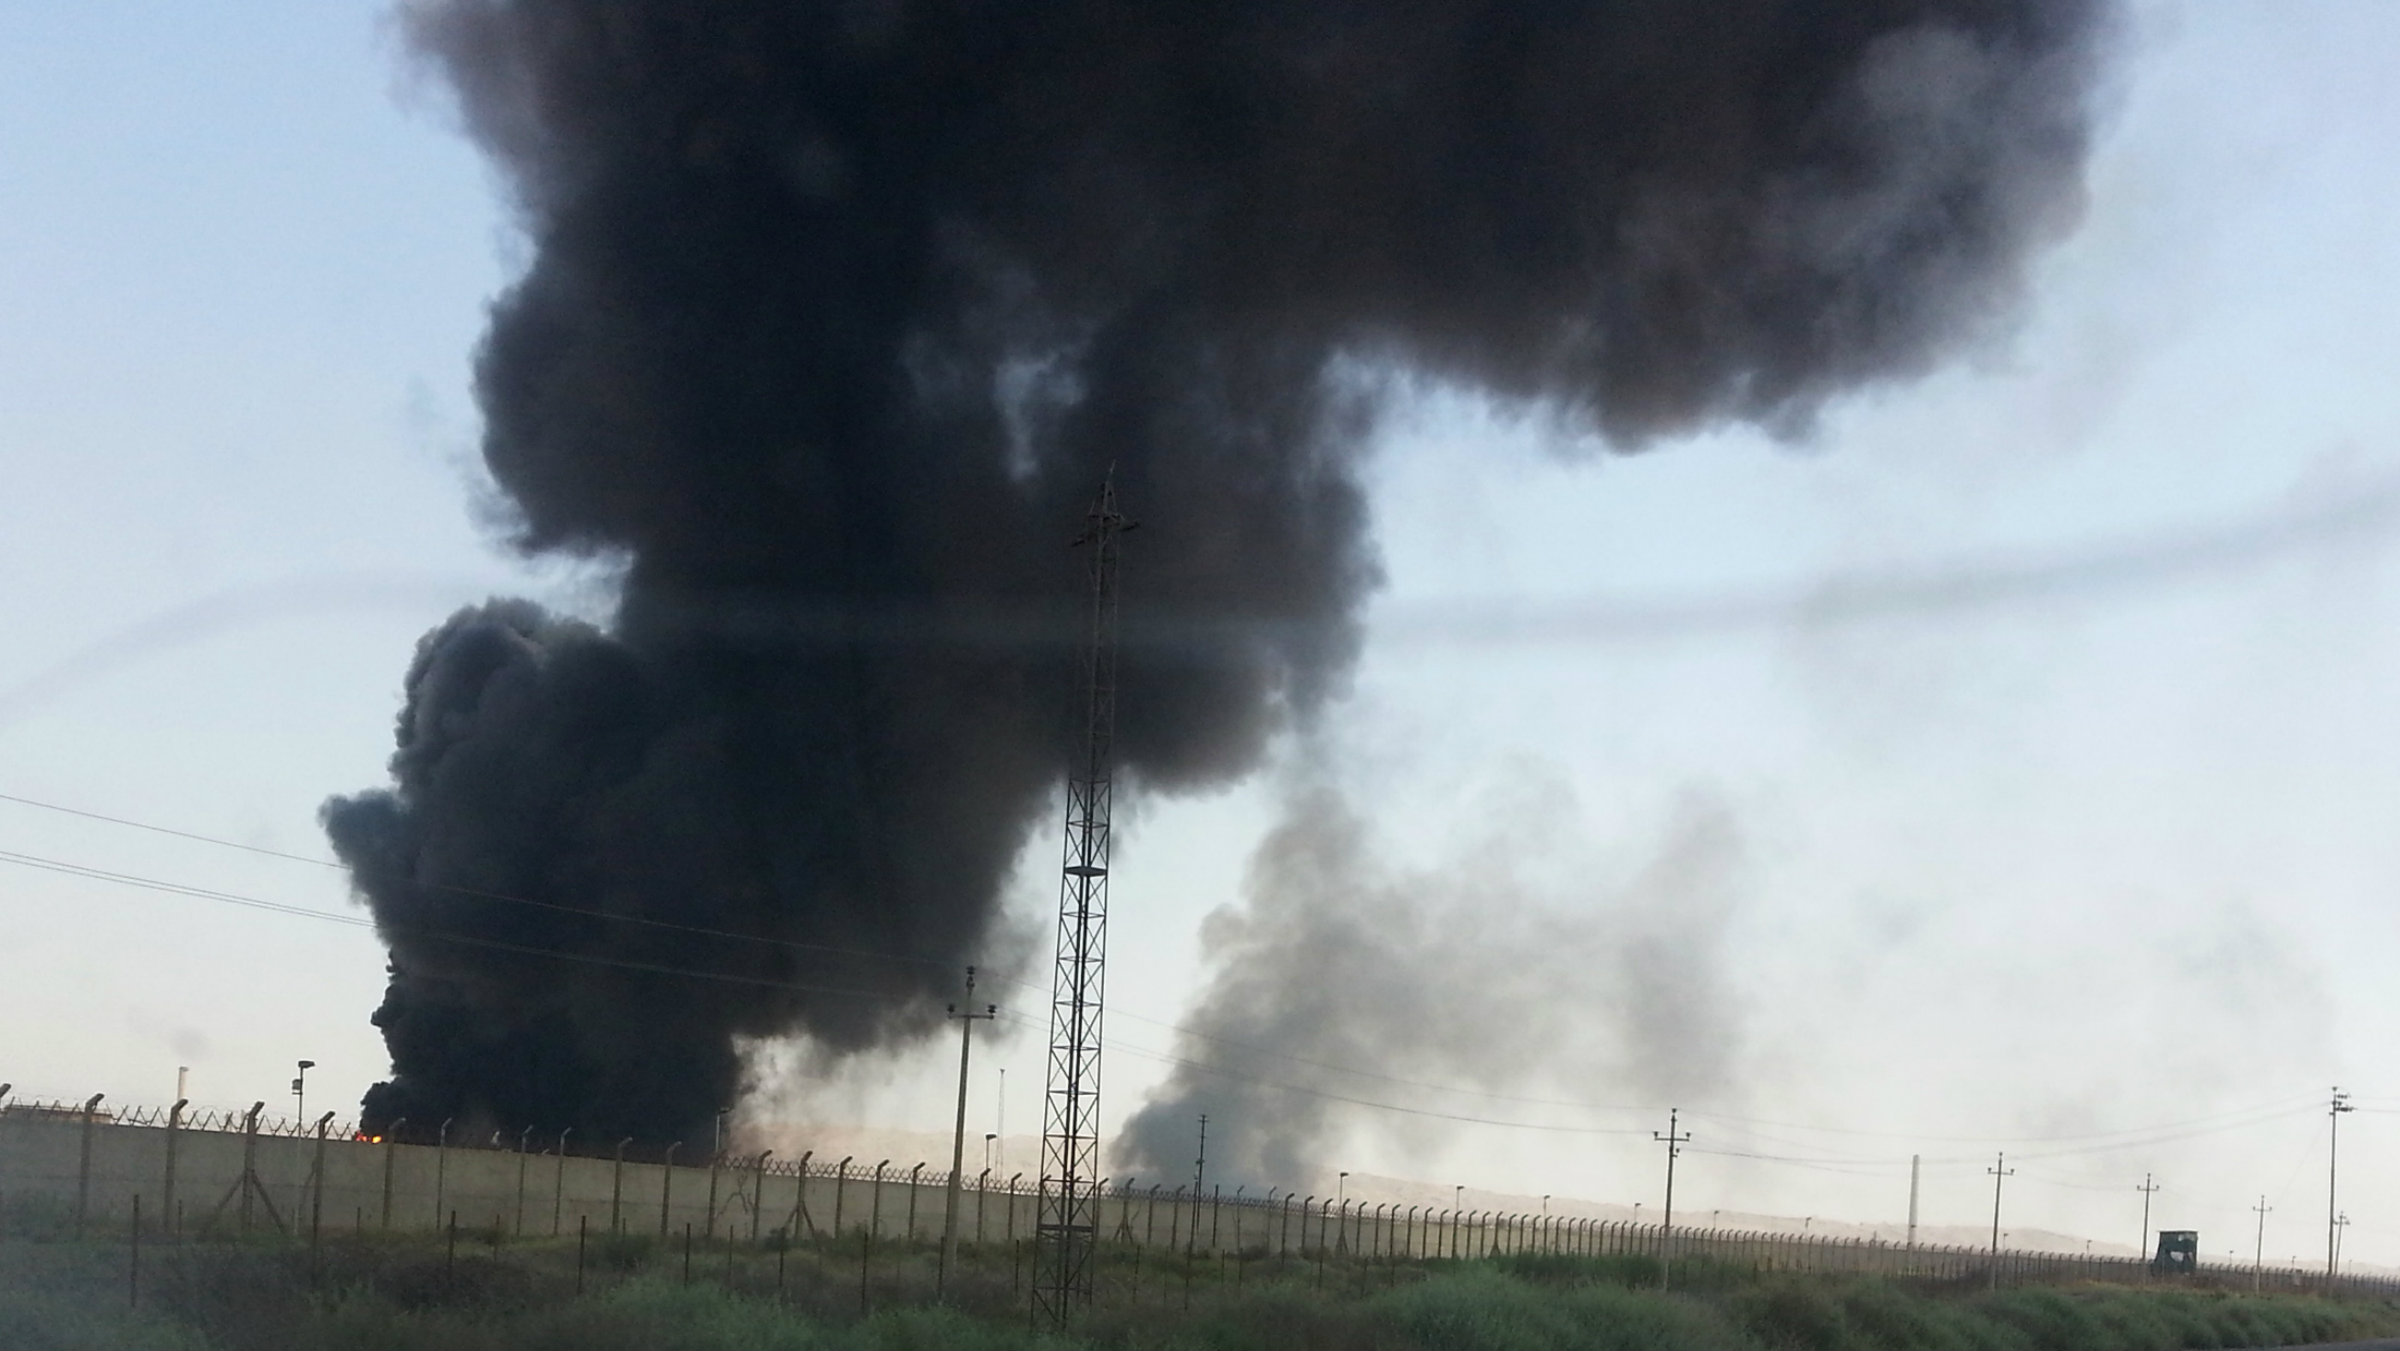 Baiji oil refinery in Iraq was set afire by ISIL fighters.